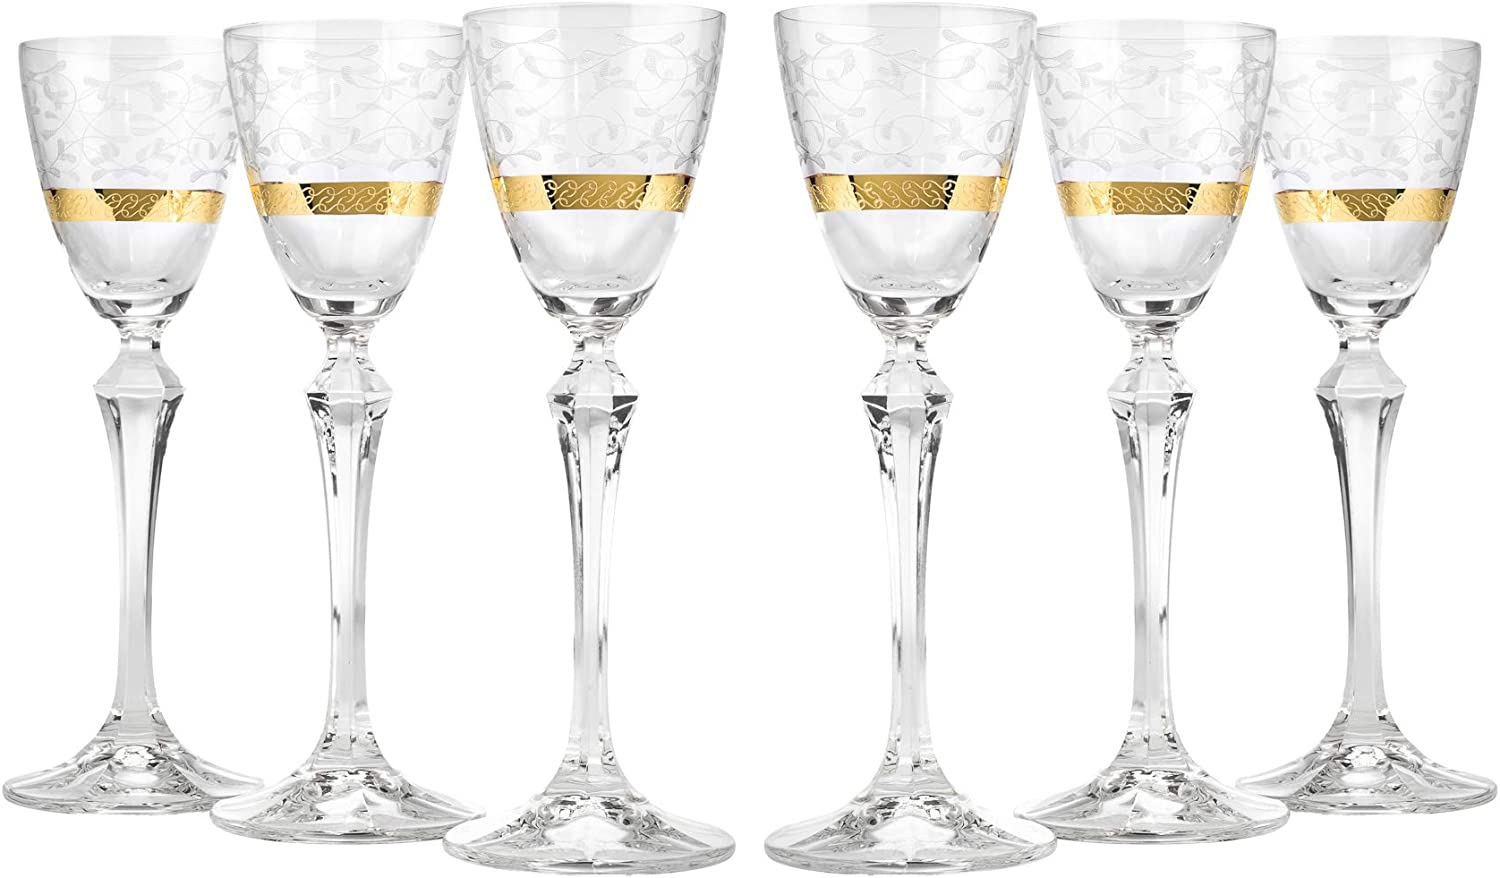 Crystalex ELISABETH GOLD 2.25-Ounces Ornamental Crystal Liquer Stem Glass Set with a Gold Rim, Traditional Bohemian Crystalware, Footed Cordial Glasses for Liquer, 6 Piece Set